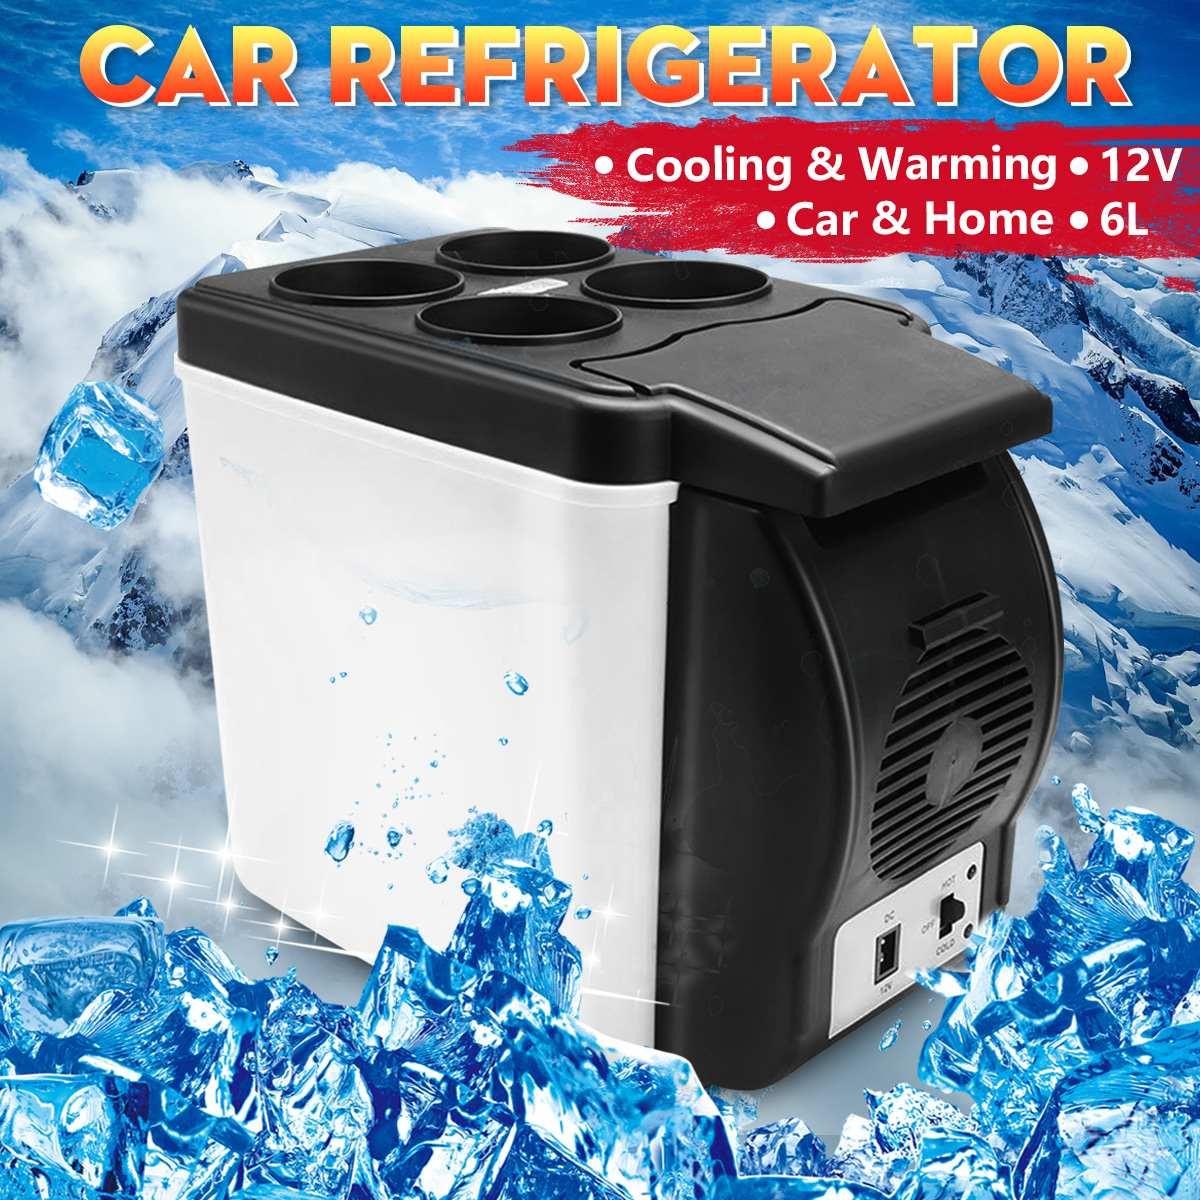 6L Mini Home Camping Fridge Electric Cool Box Cooler and Warmer 12V Travel Portable Box Freezer for Car Auto Truck6L Mini Home Camping Fridge Electric Cool Box Cooler and Warmer 12V Travel Portable Box Freezer for Car Auto Truck